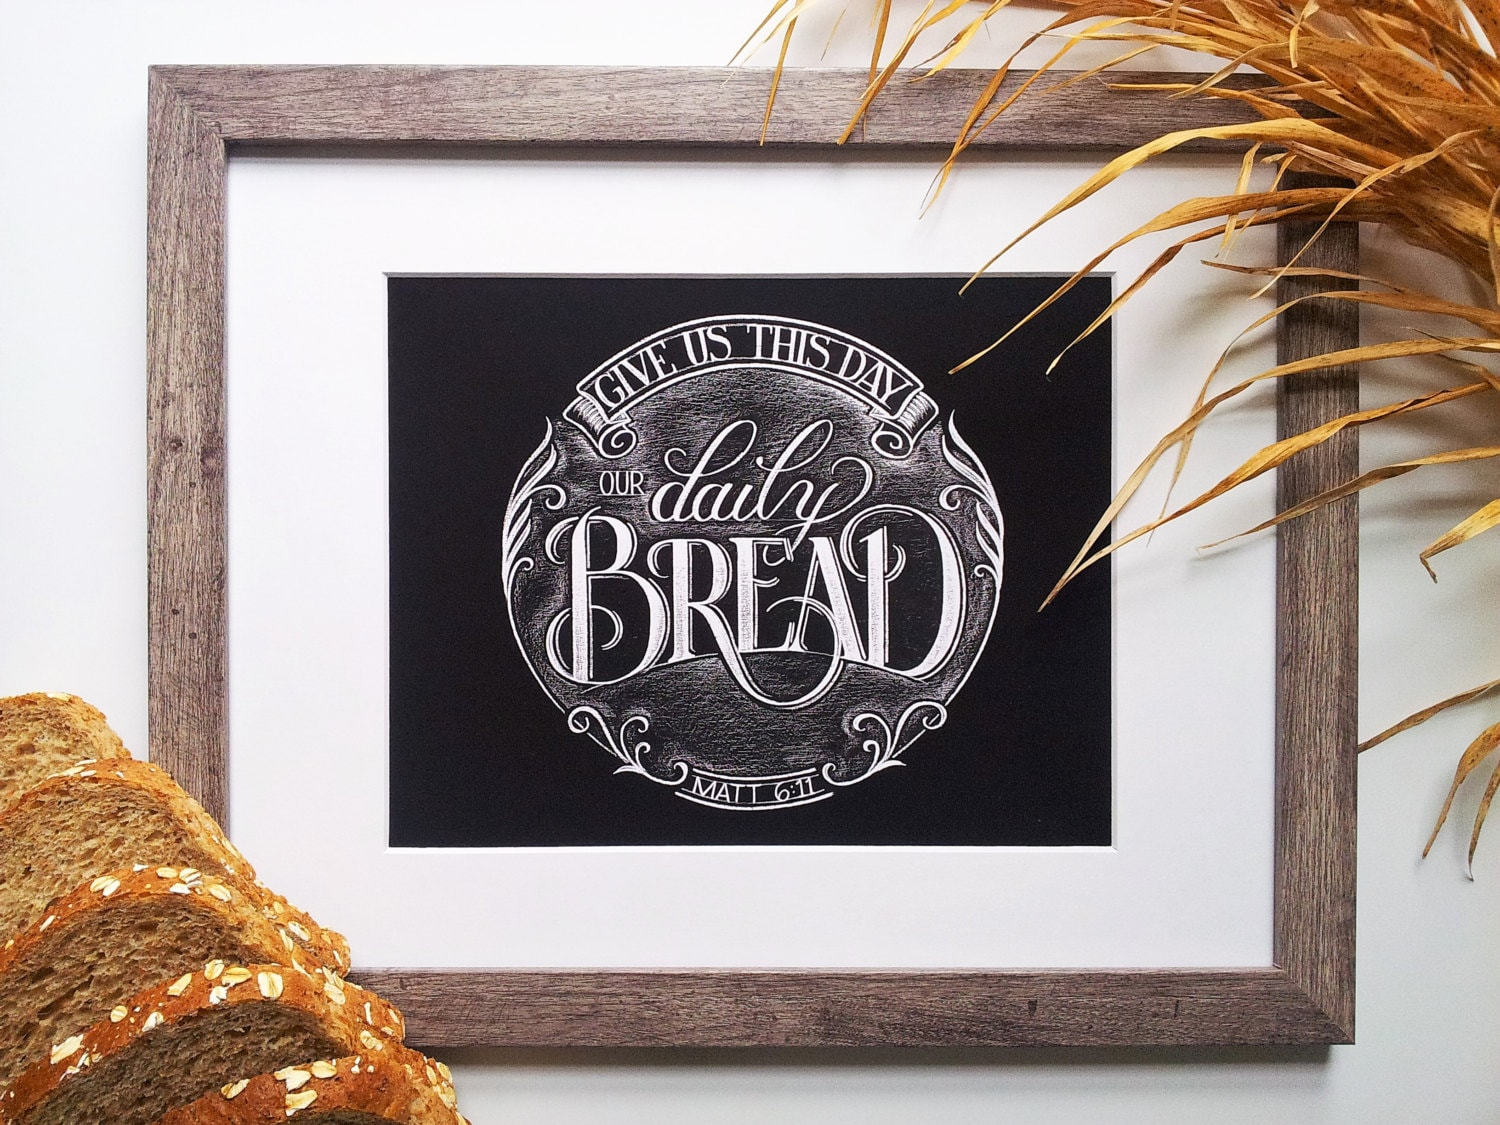 Give Us Our Daily Bread Chalkboard Art PRINT Giclee Art